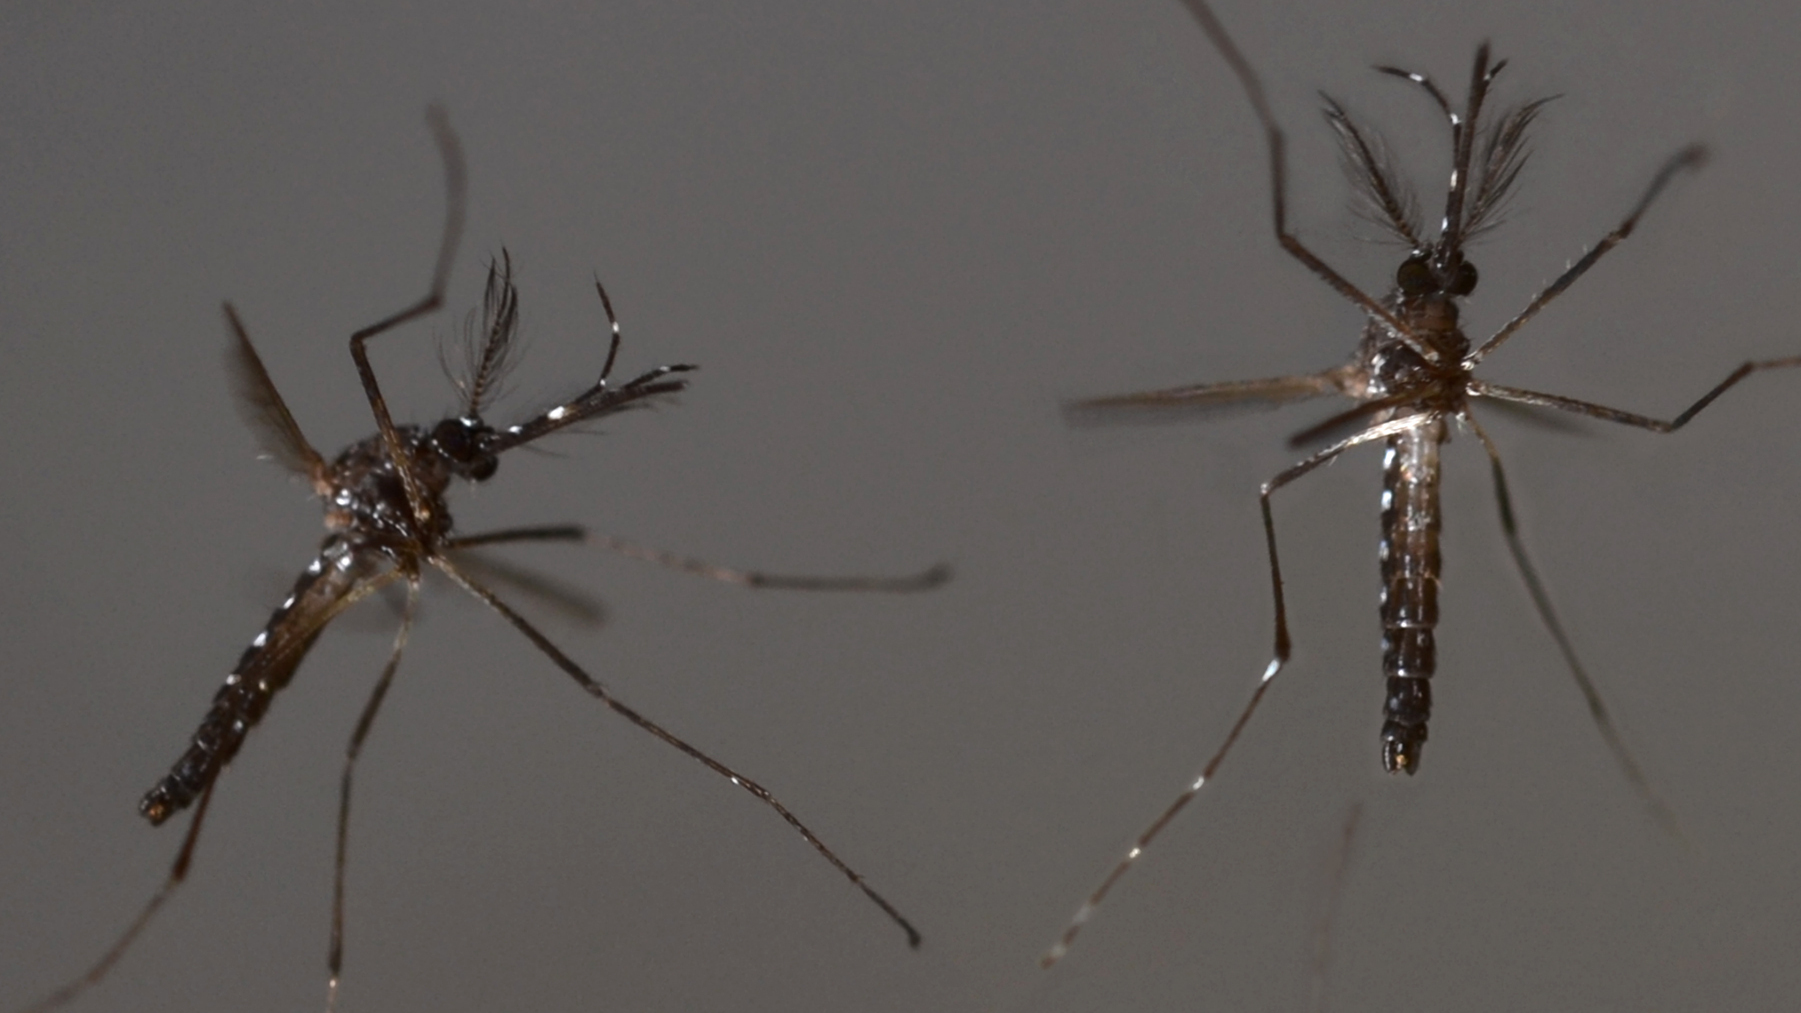 Florida Health Officials Hope To Test GMO Mosquitoes This Spring